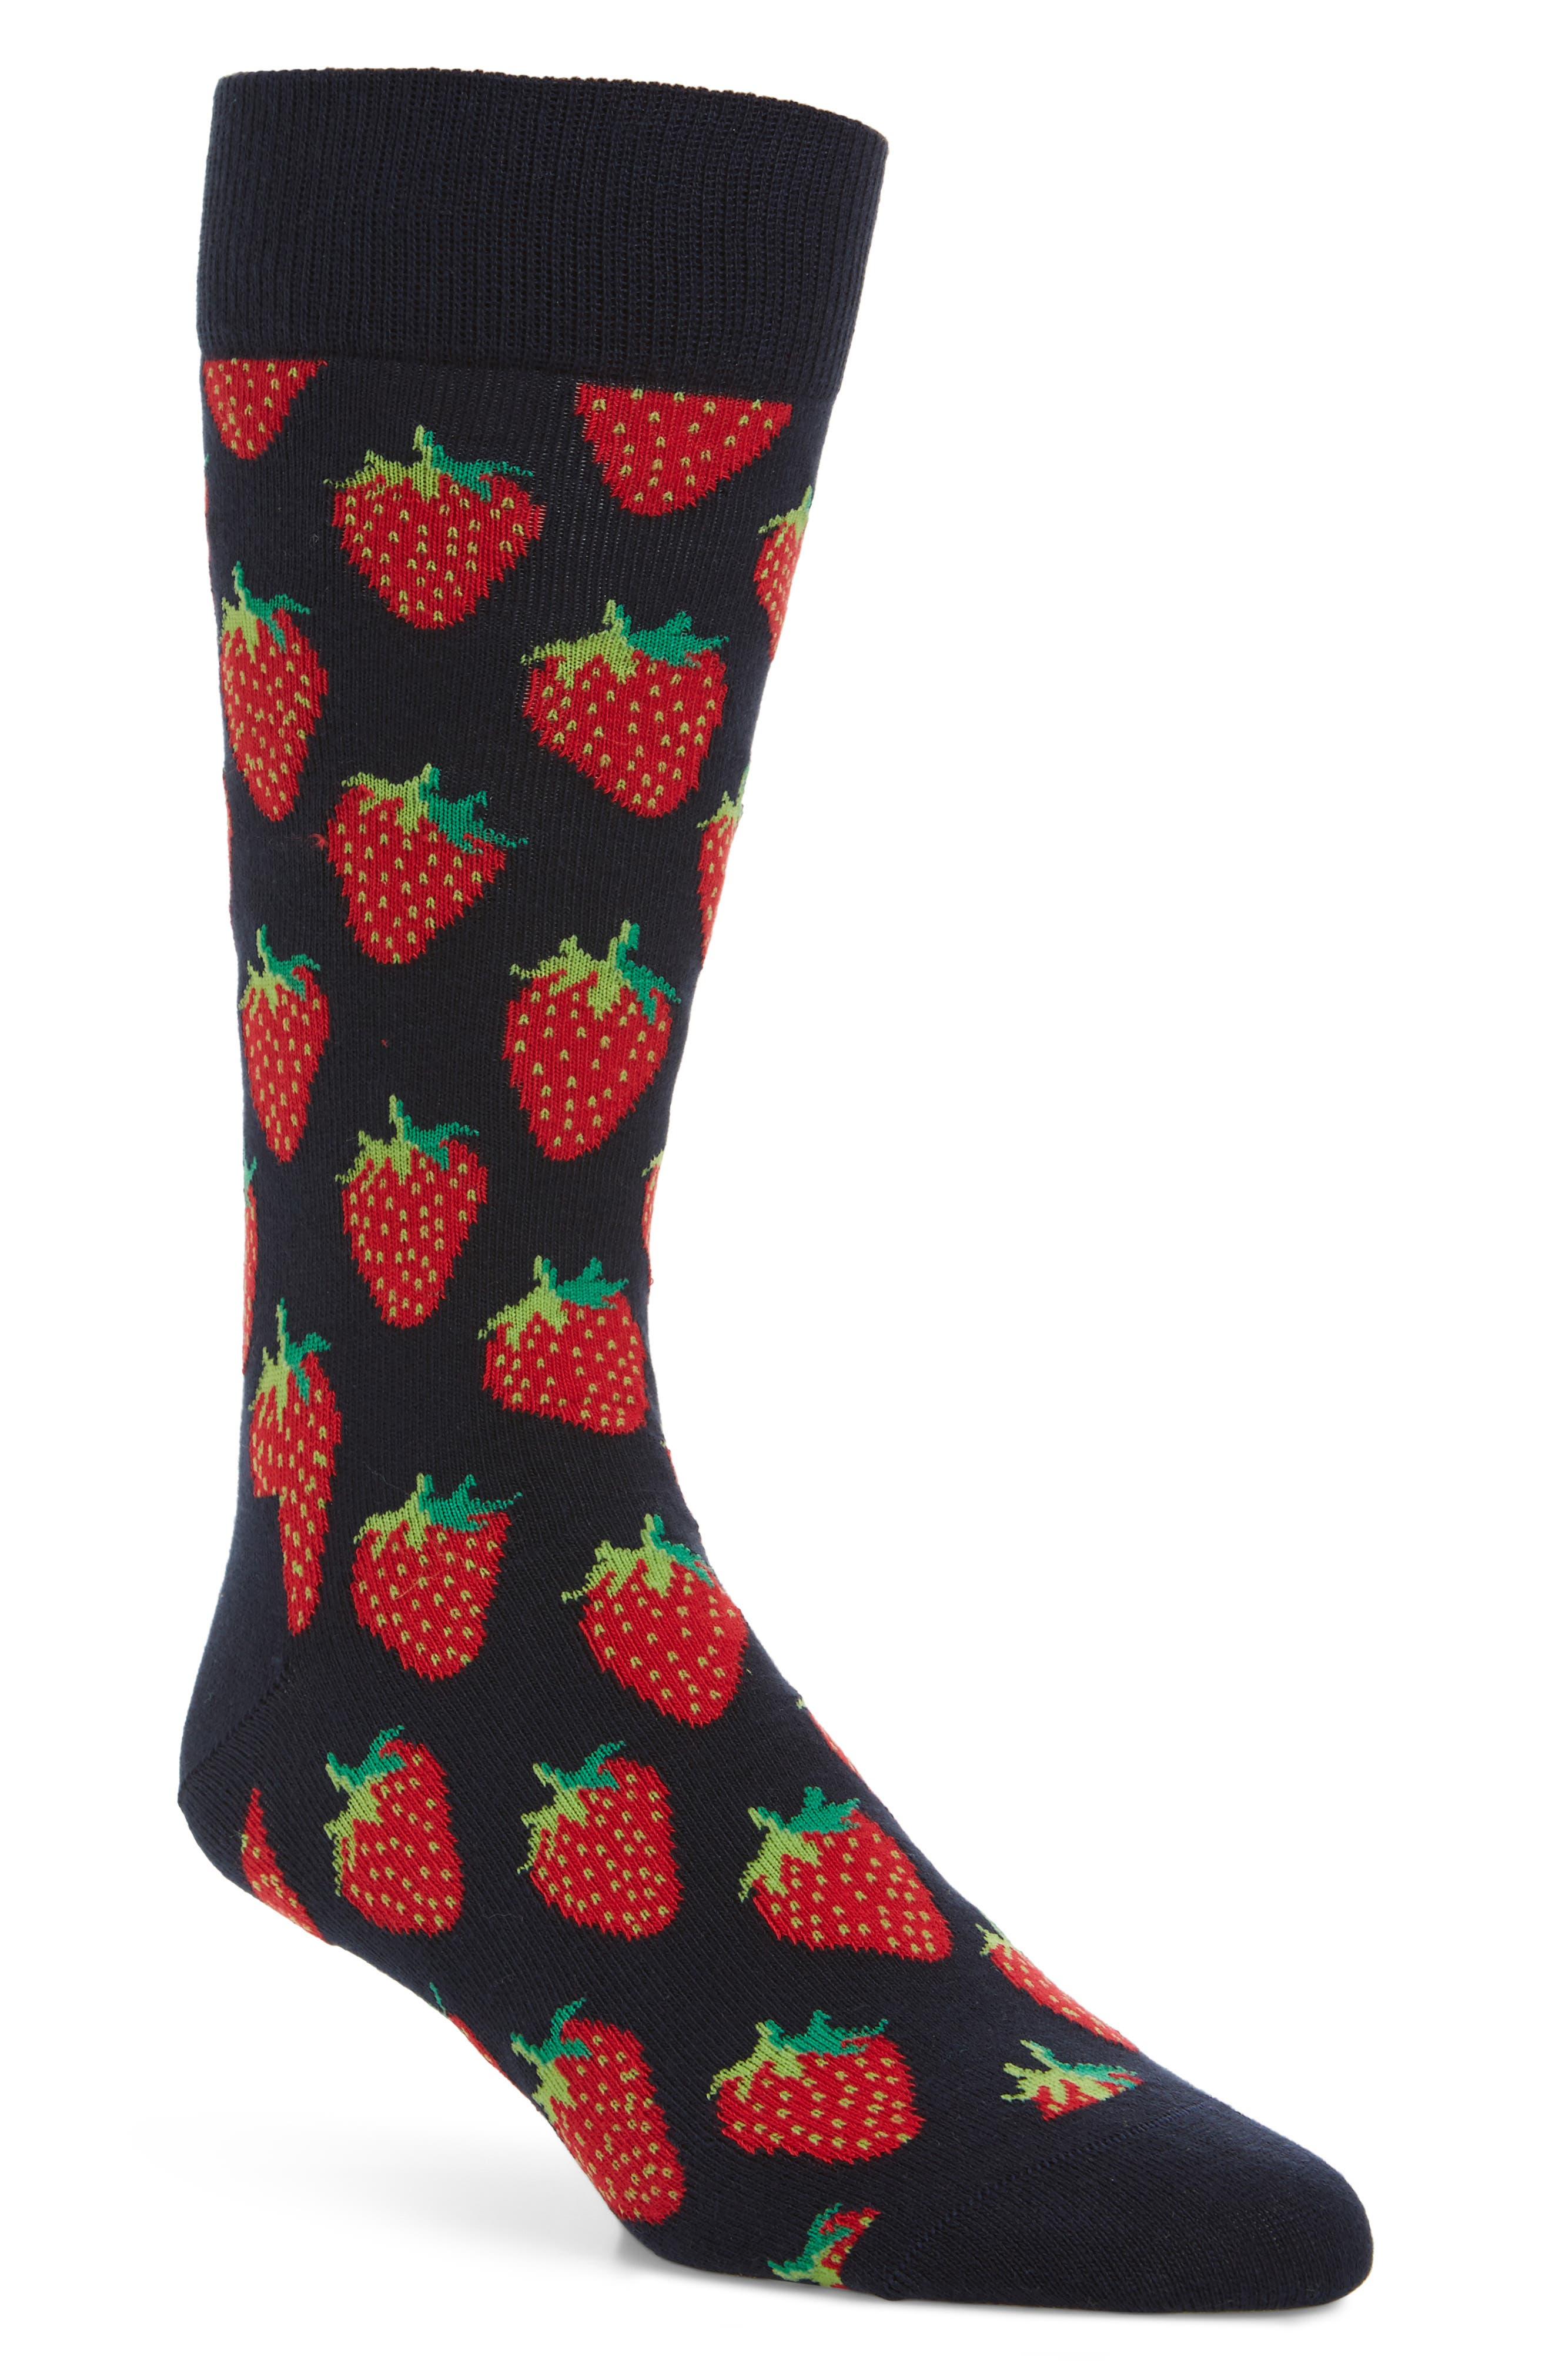 Strawberry Socks,                         Main,                         color, NAVY/ RED